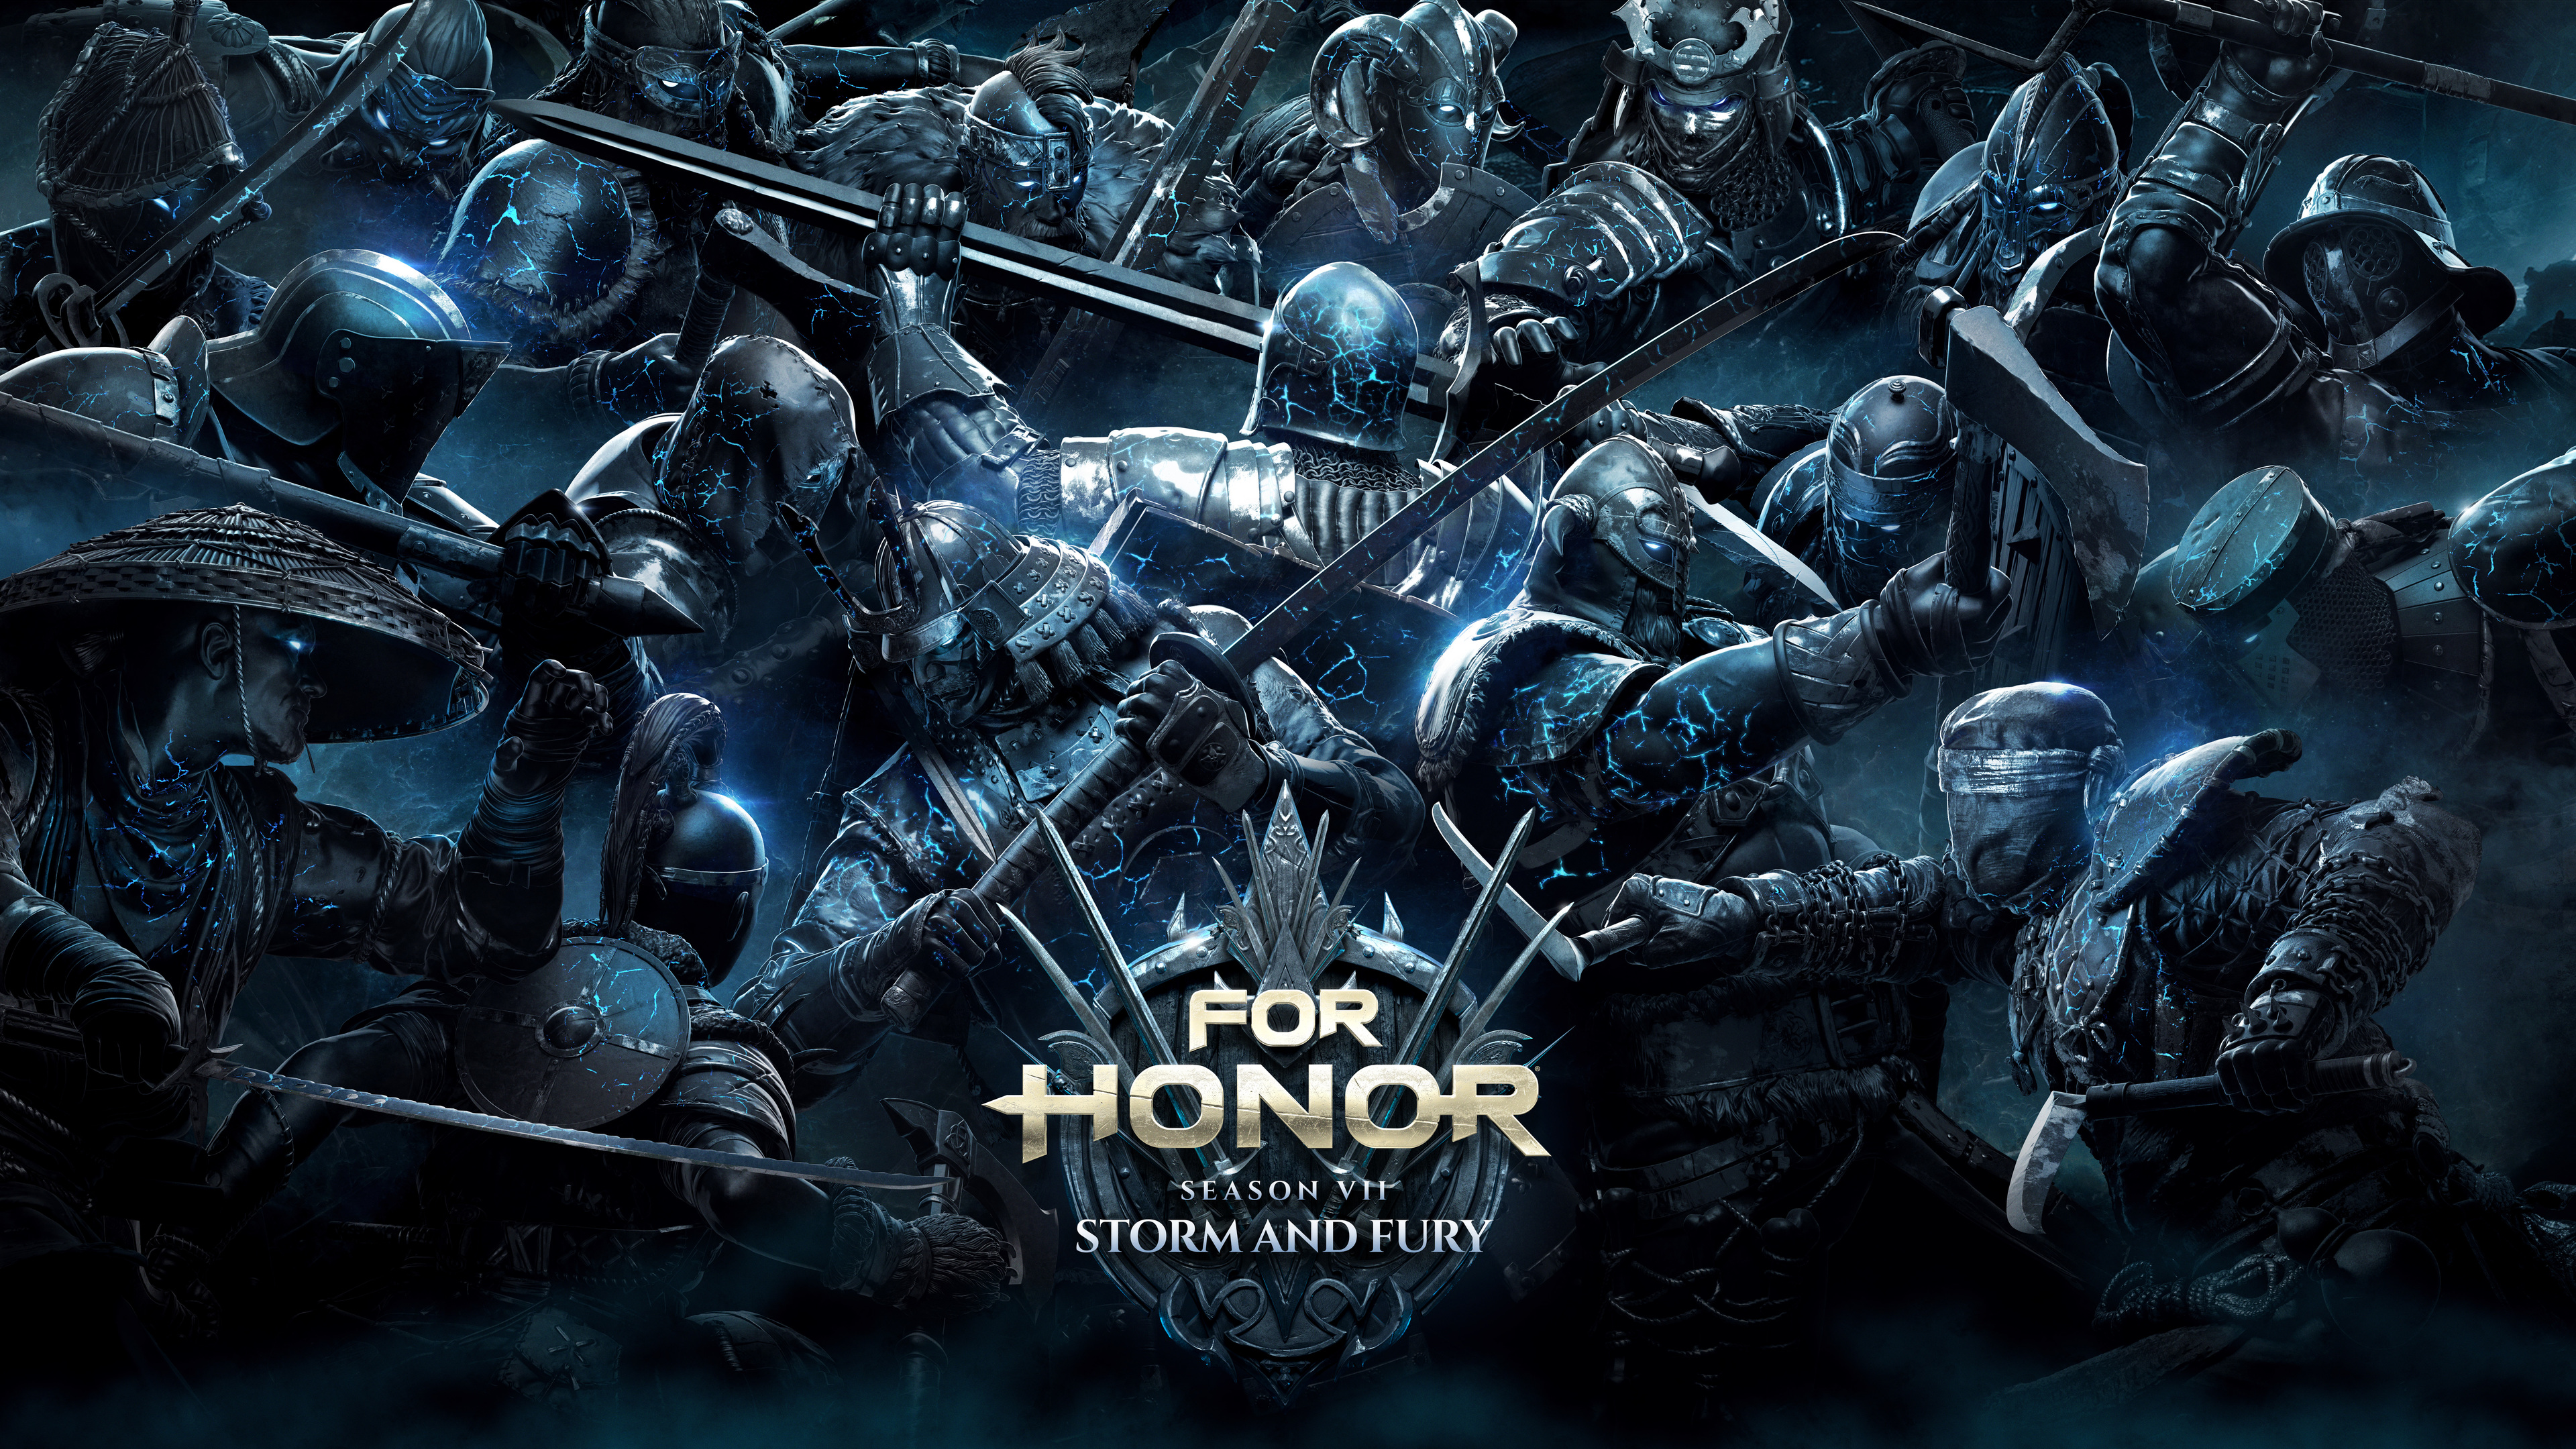 for honor season 7 storm and fury 2018 8k 1537691513 - For Honor Season 7 Storm And Fury 2018 8k - xbox games wallpapers, ps games wallpapers, pc games wallpapers, hd-wallpapers, games wallpapers, for honor wallpapers, 8k wallpapers, 5k wallpapers, 4k-wallpapers, 2018 games wallpapers